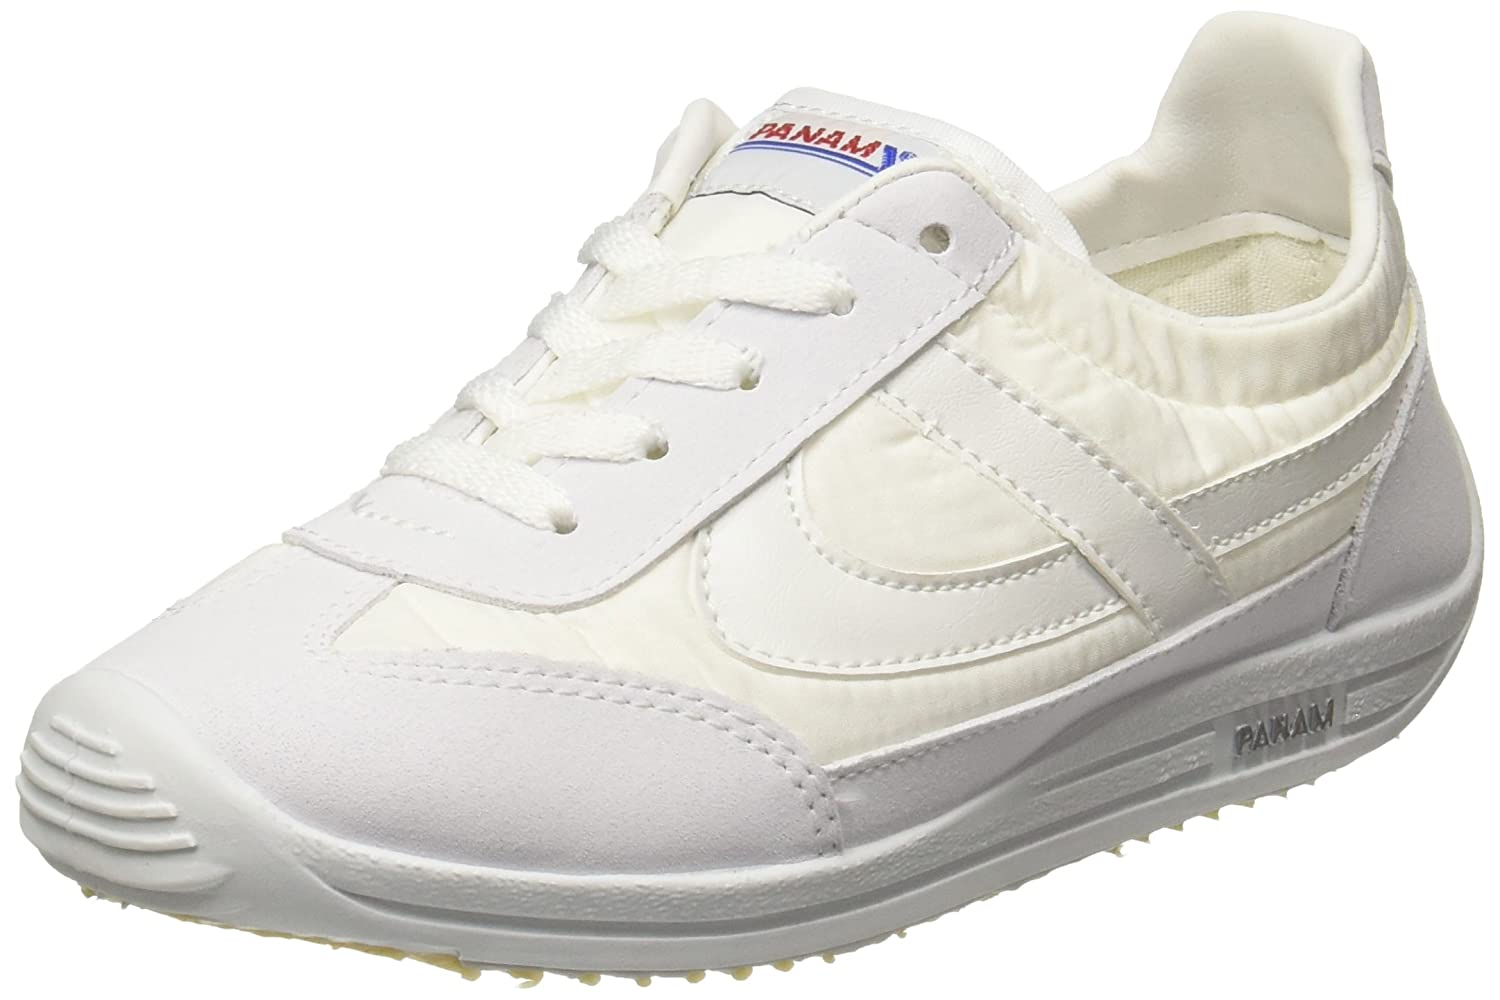 PANAM Classic Tennis Shoe | Handcrafted Zapatillas | Hecho En México Since 1962 B01JQJZ1FO 8 Men's / 9.5 Women's US|Nieve